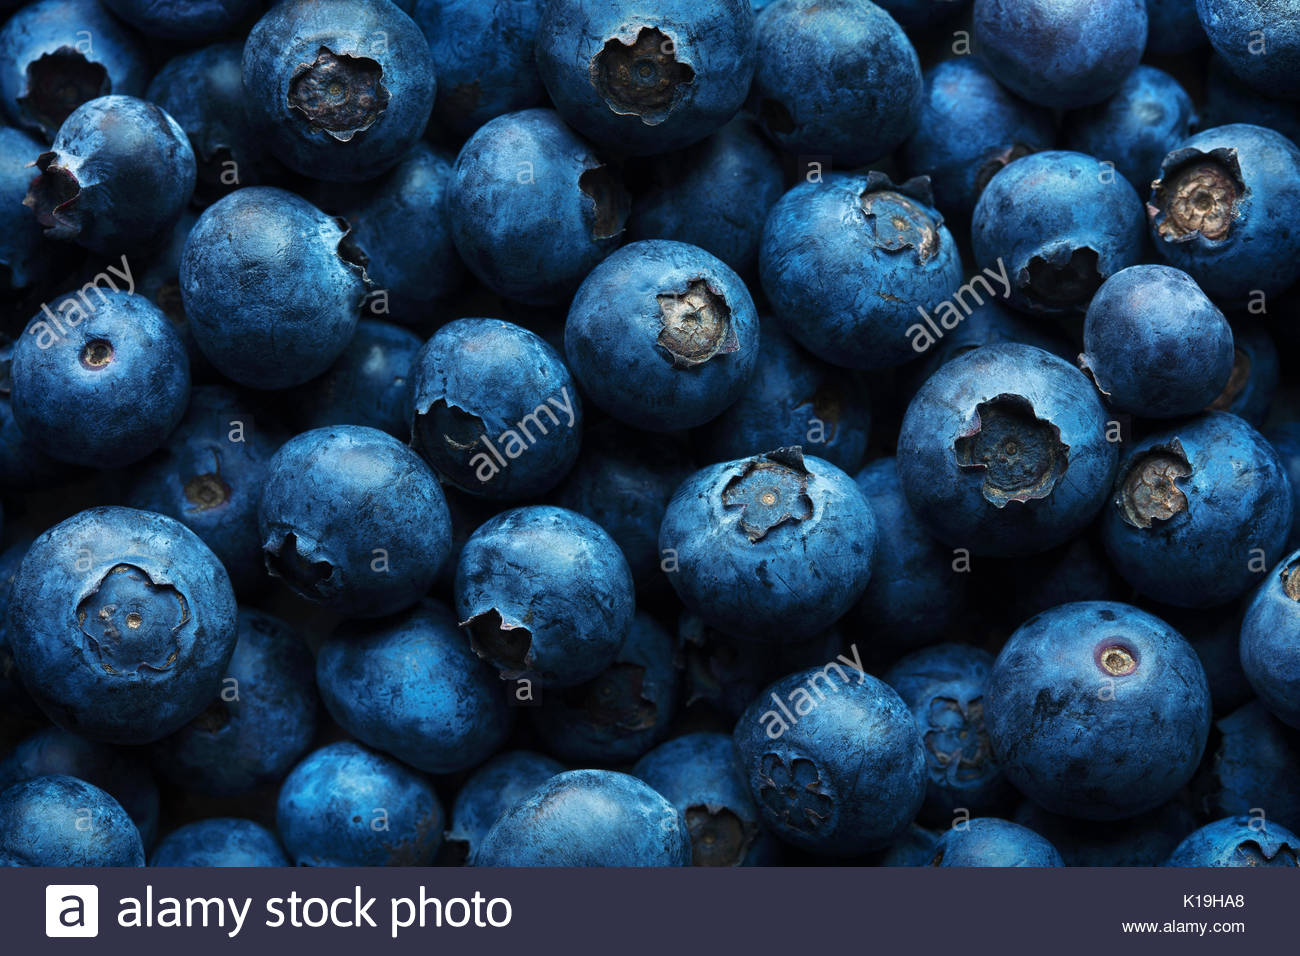 Blueberries background photographed from above full frame texture - Stock Image